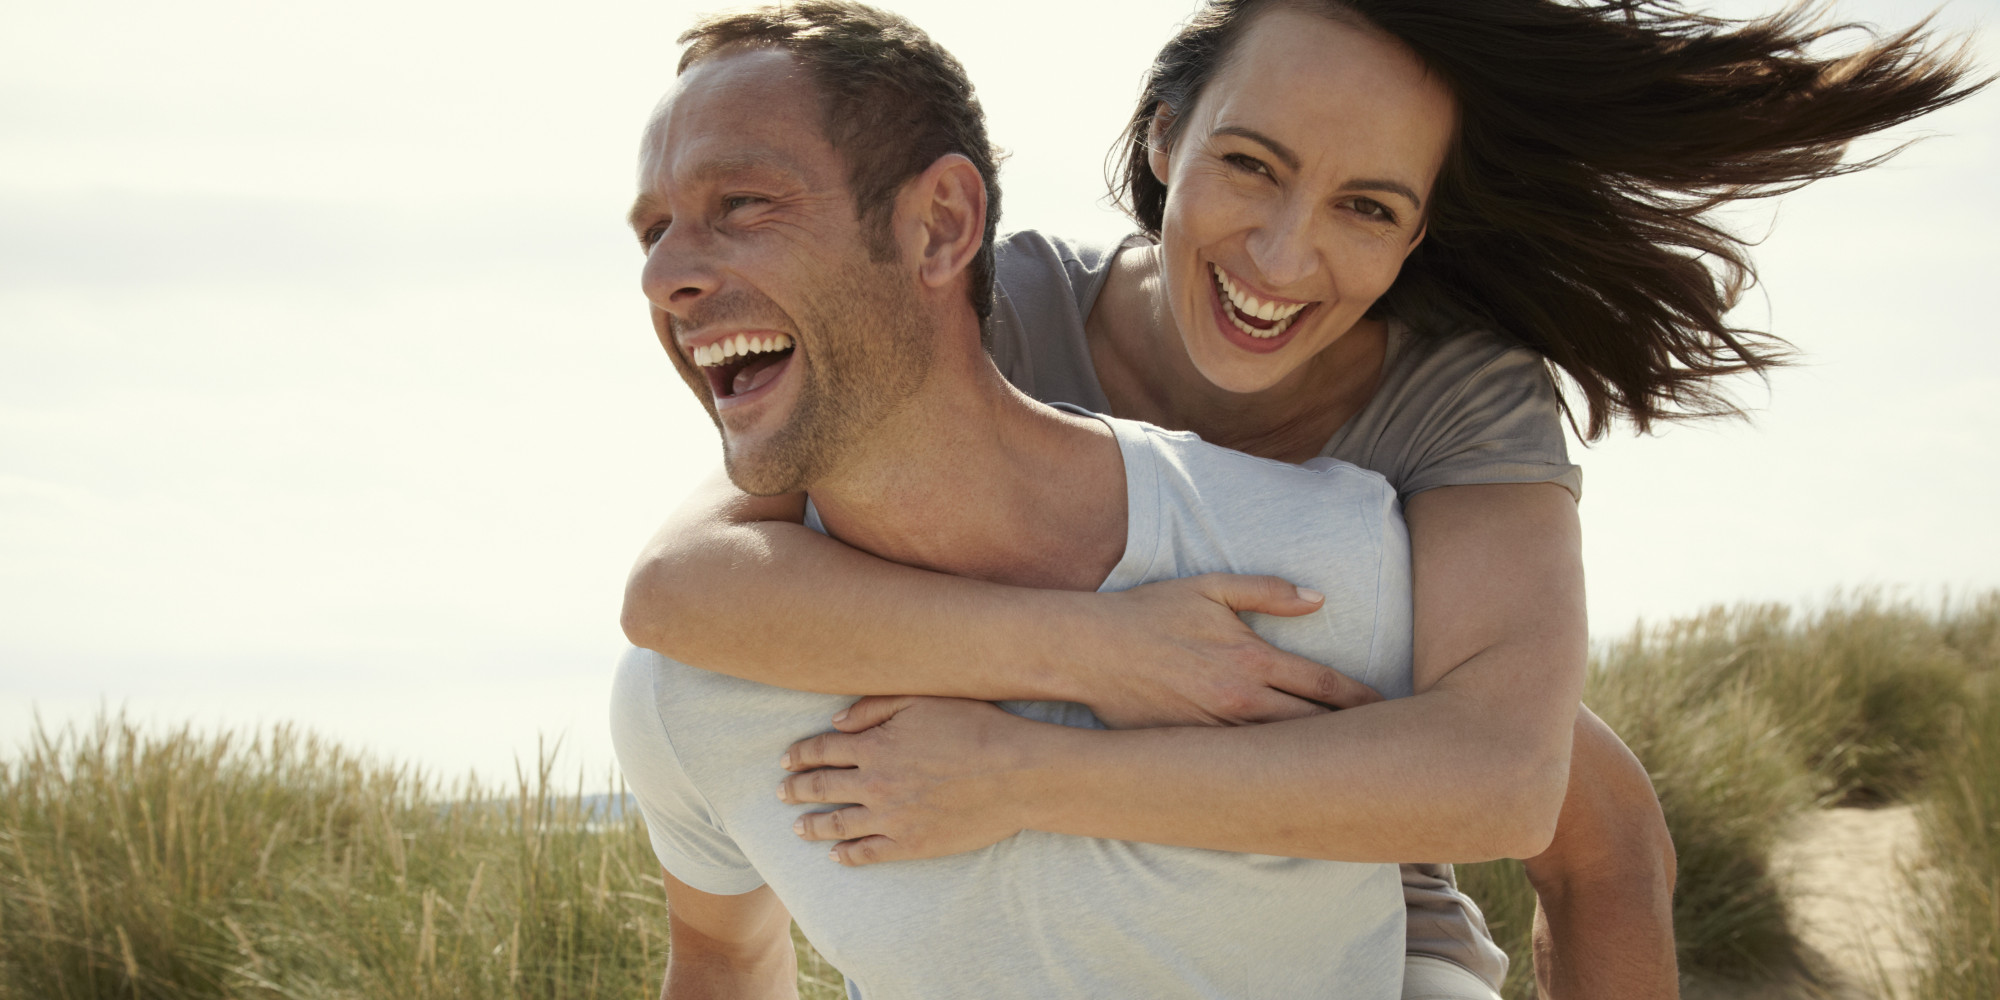 Top Tips for Building Every Type of Relationship